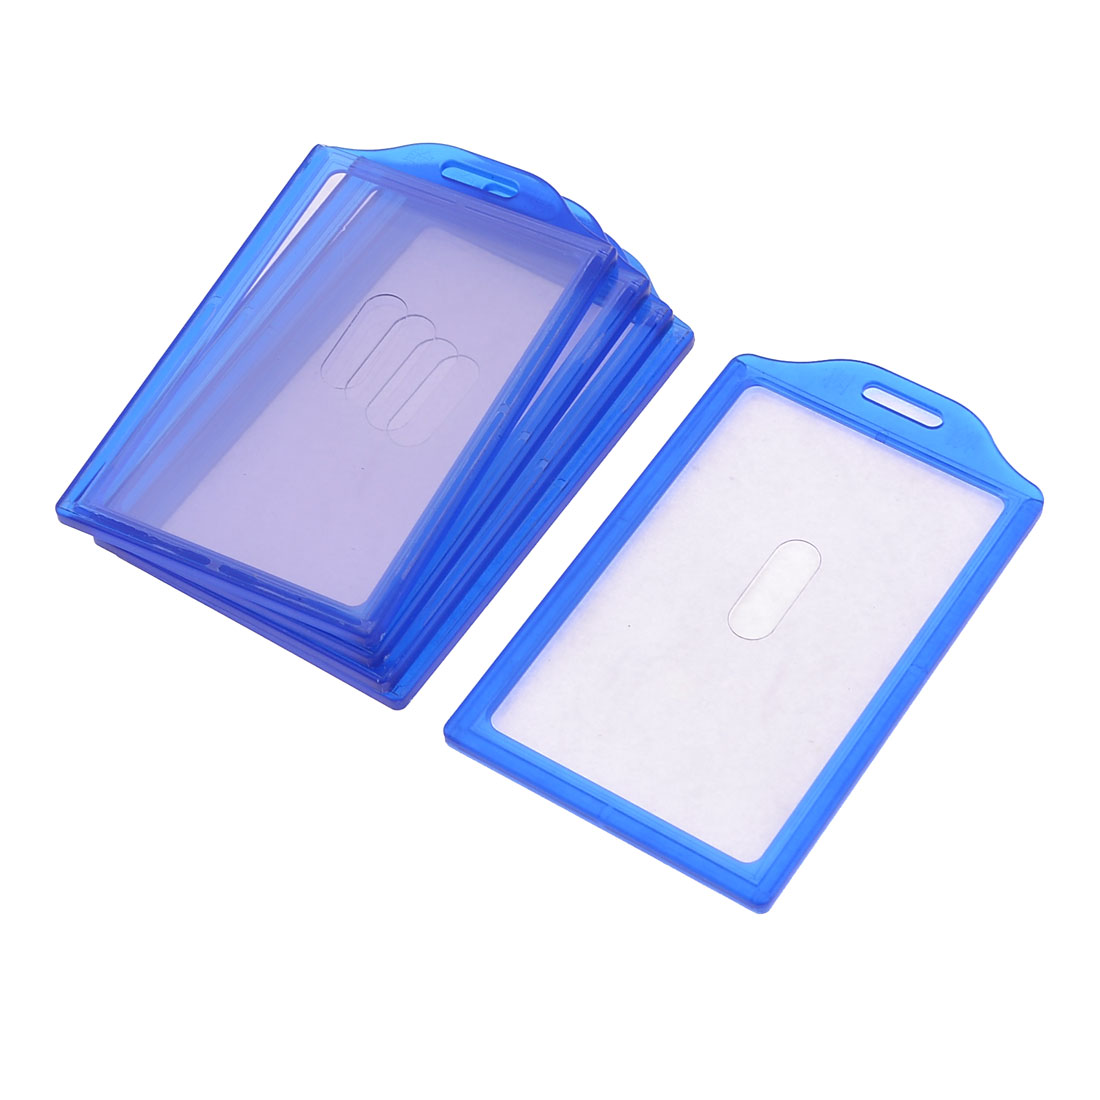 5pcs Blue Plastic Frame Vertical School Business Work Slide ID Card Holder 84mm x 52mm